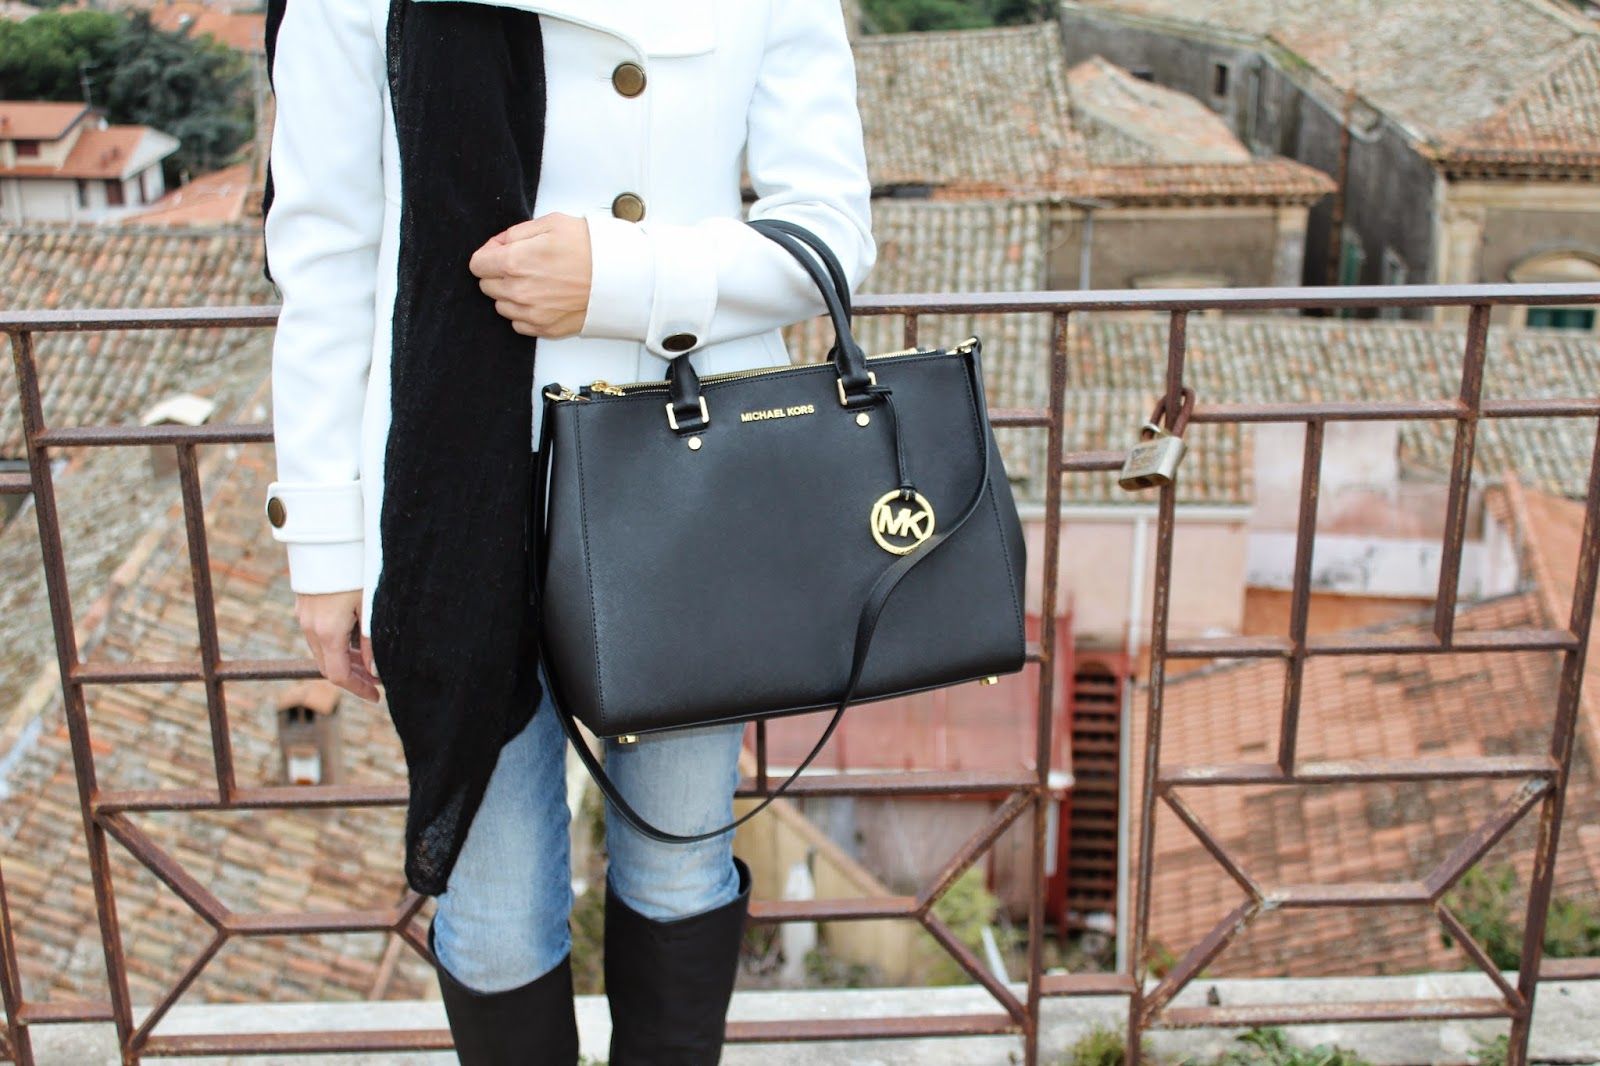 michael kors sutton bag outfit